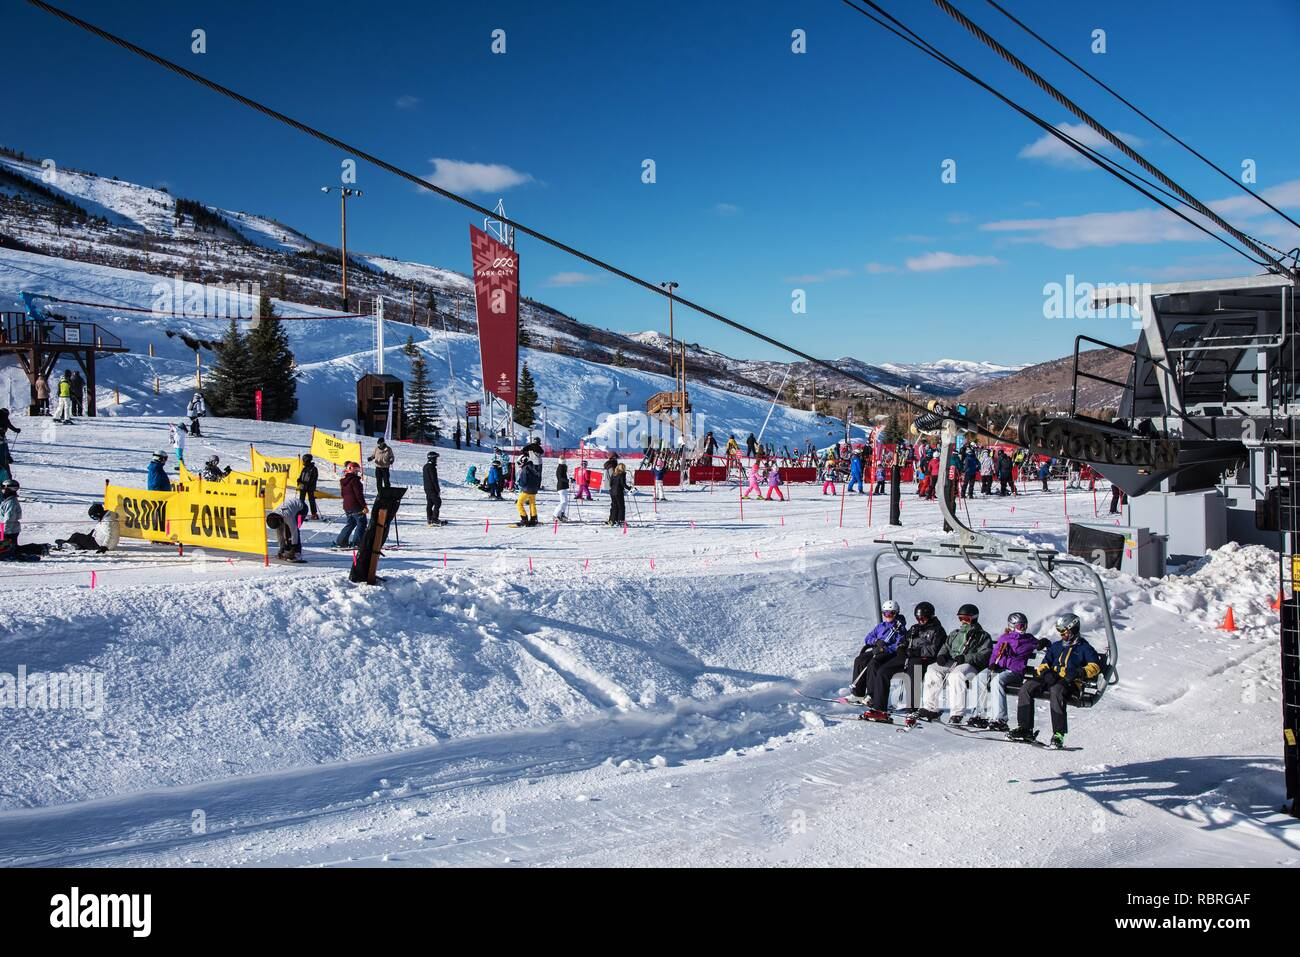 Children, adults, moms and dads enjoy a day at Park City Ski Resort in Utah. - Stock Image